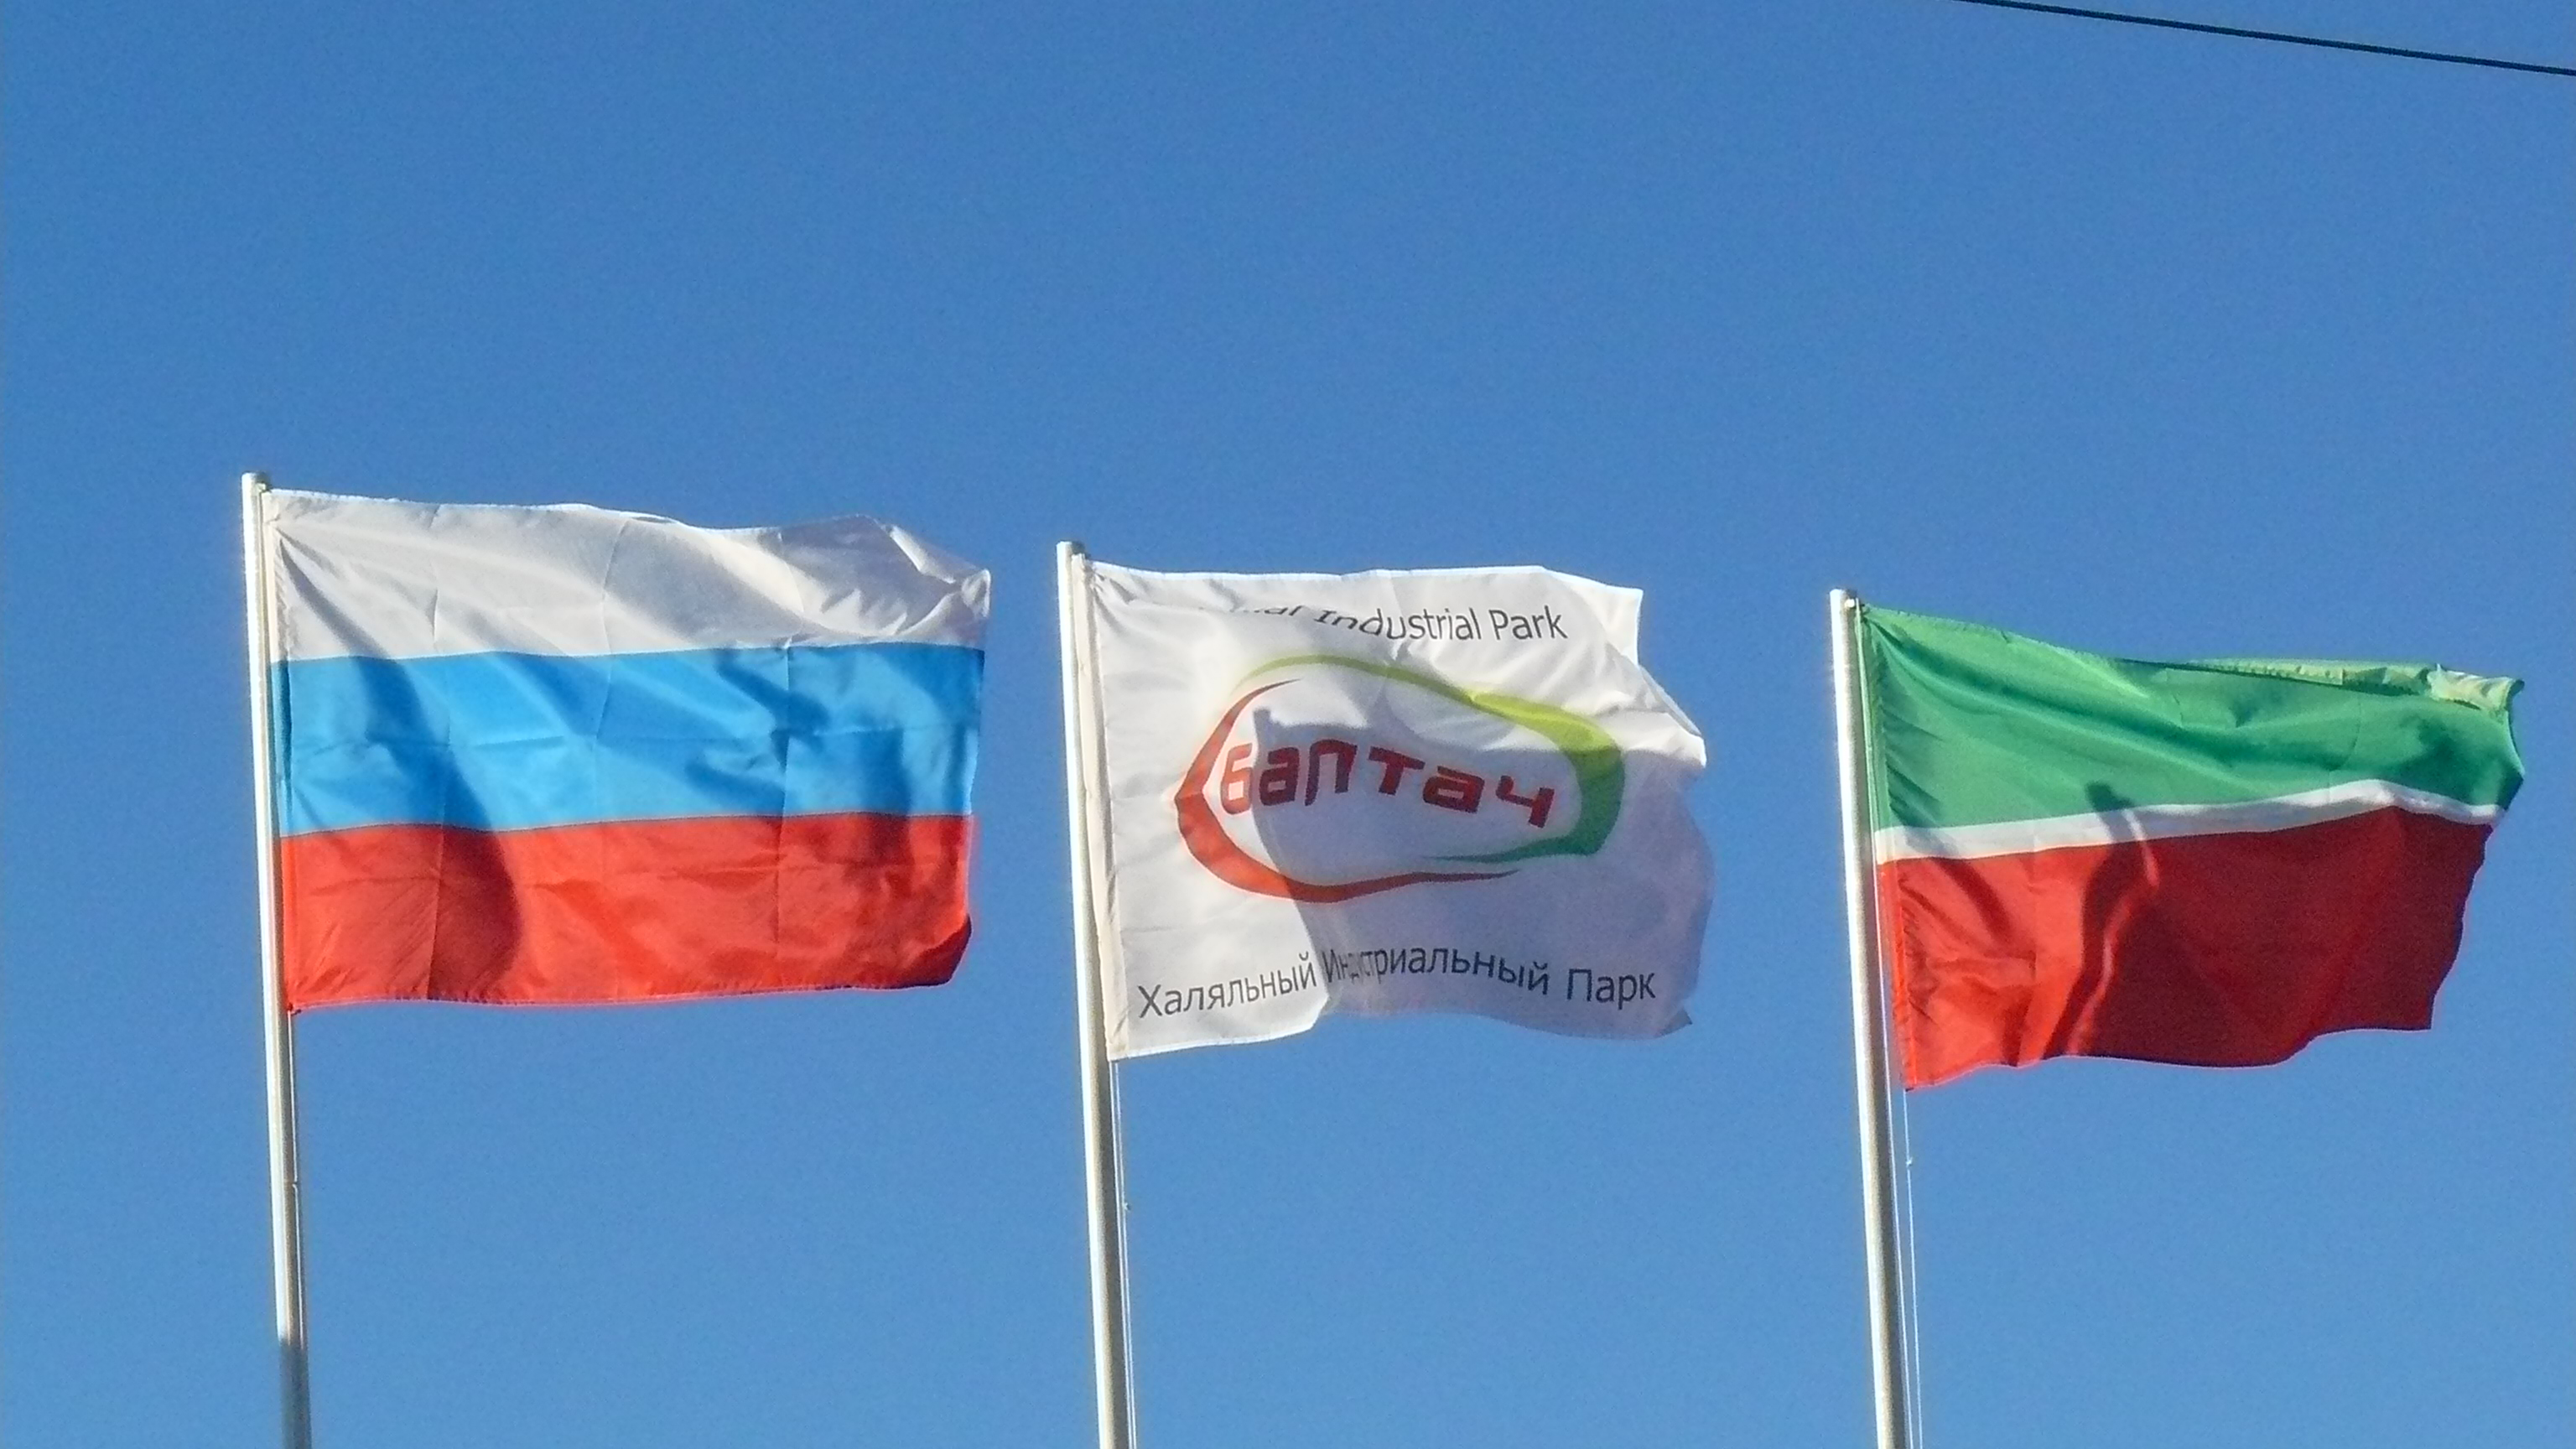 The opening of first Halal Industrial Park in Russia